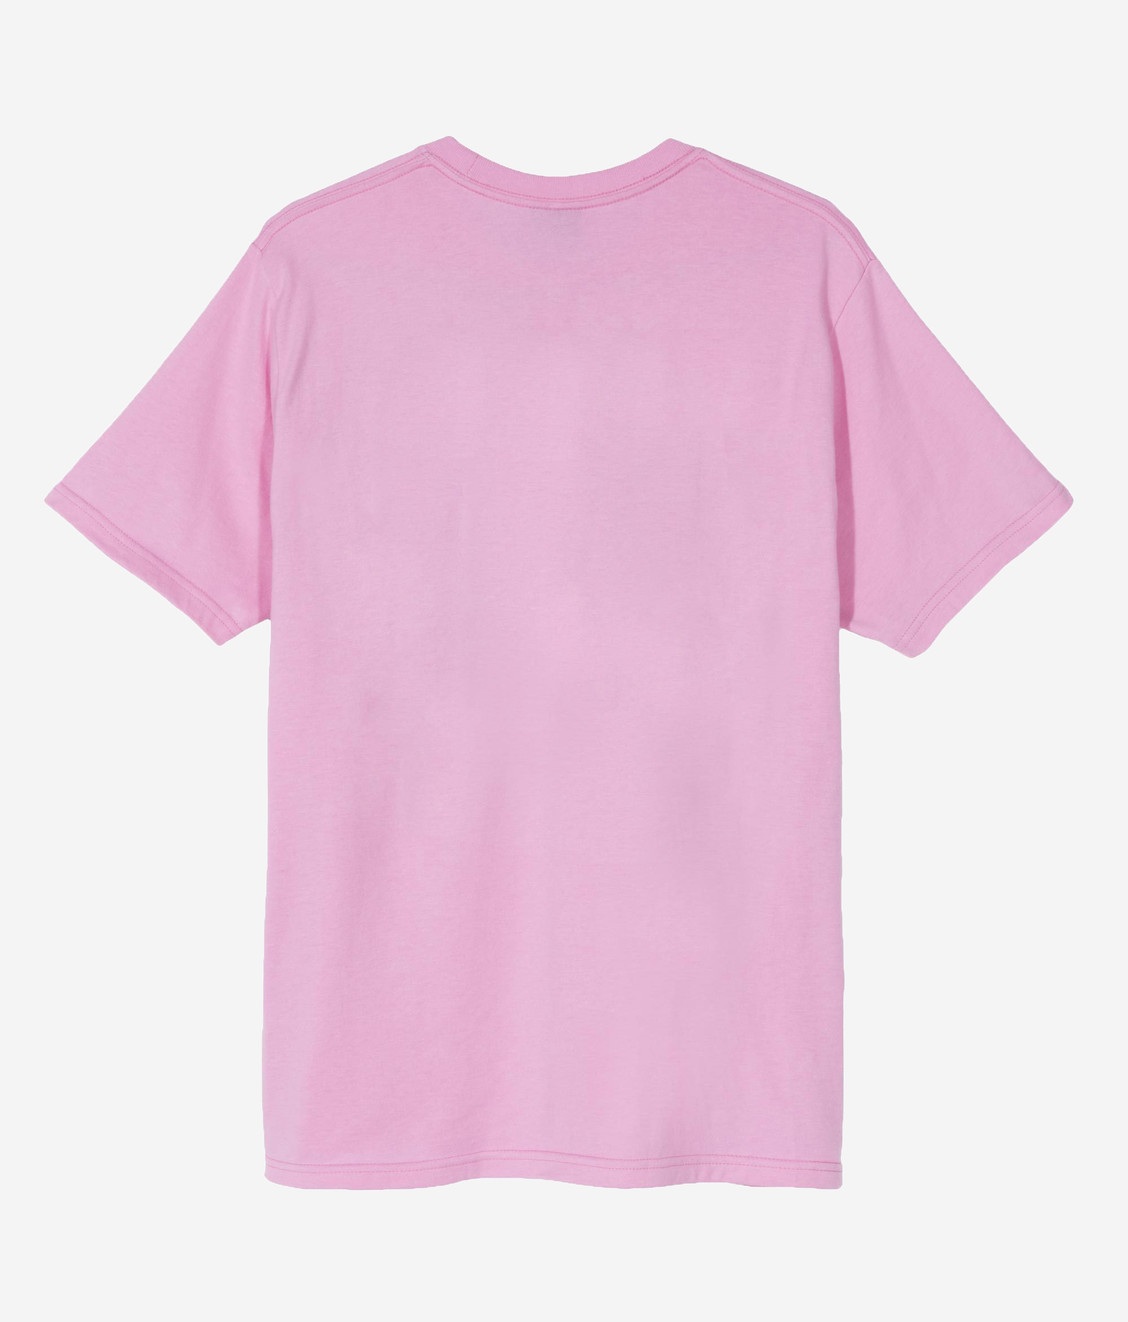 Stussy Stussy Clyde Tee Pink